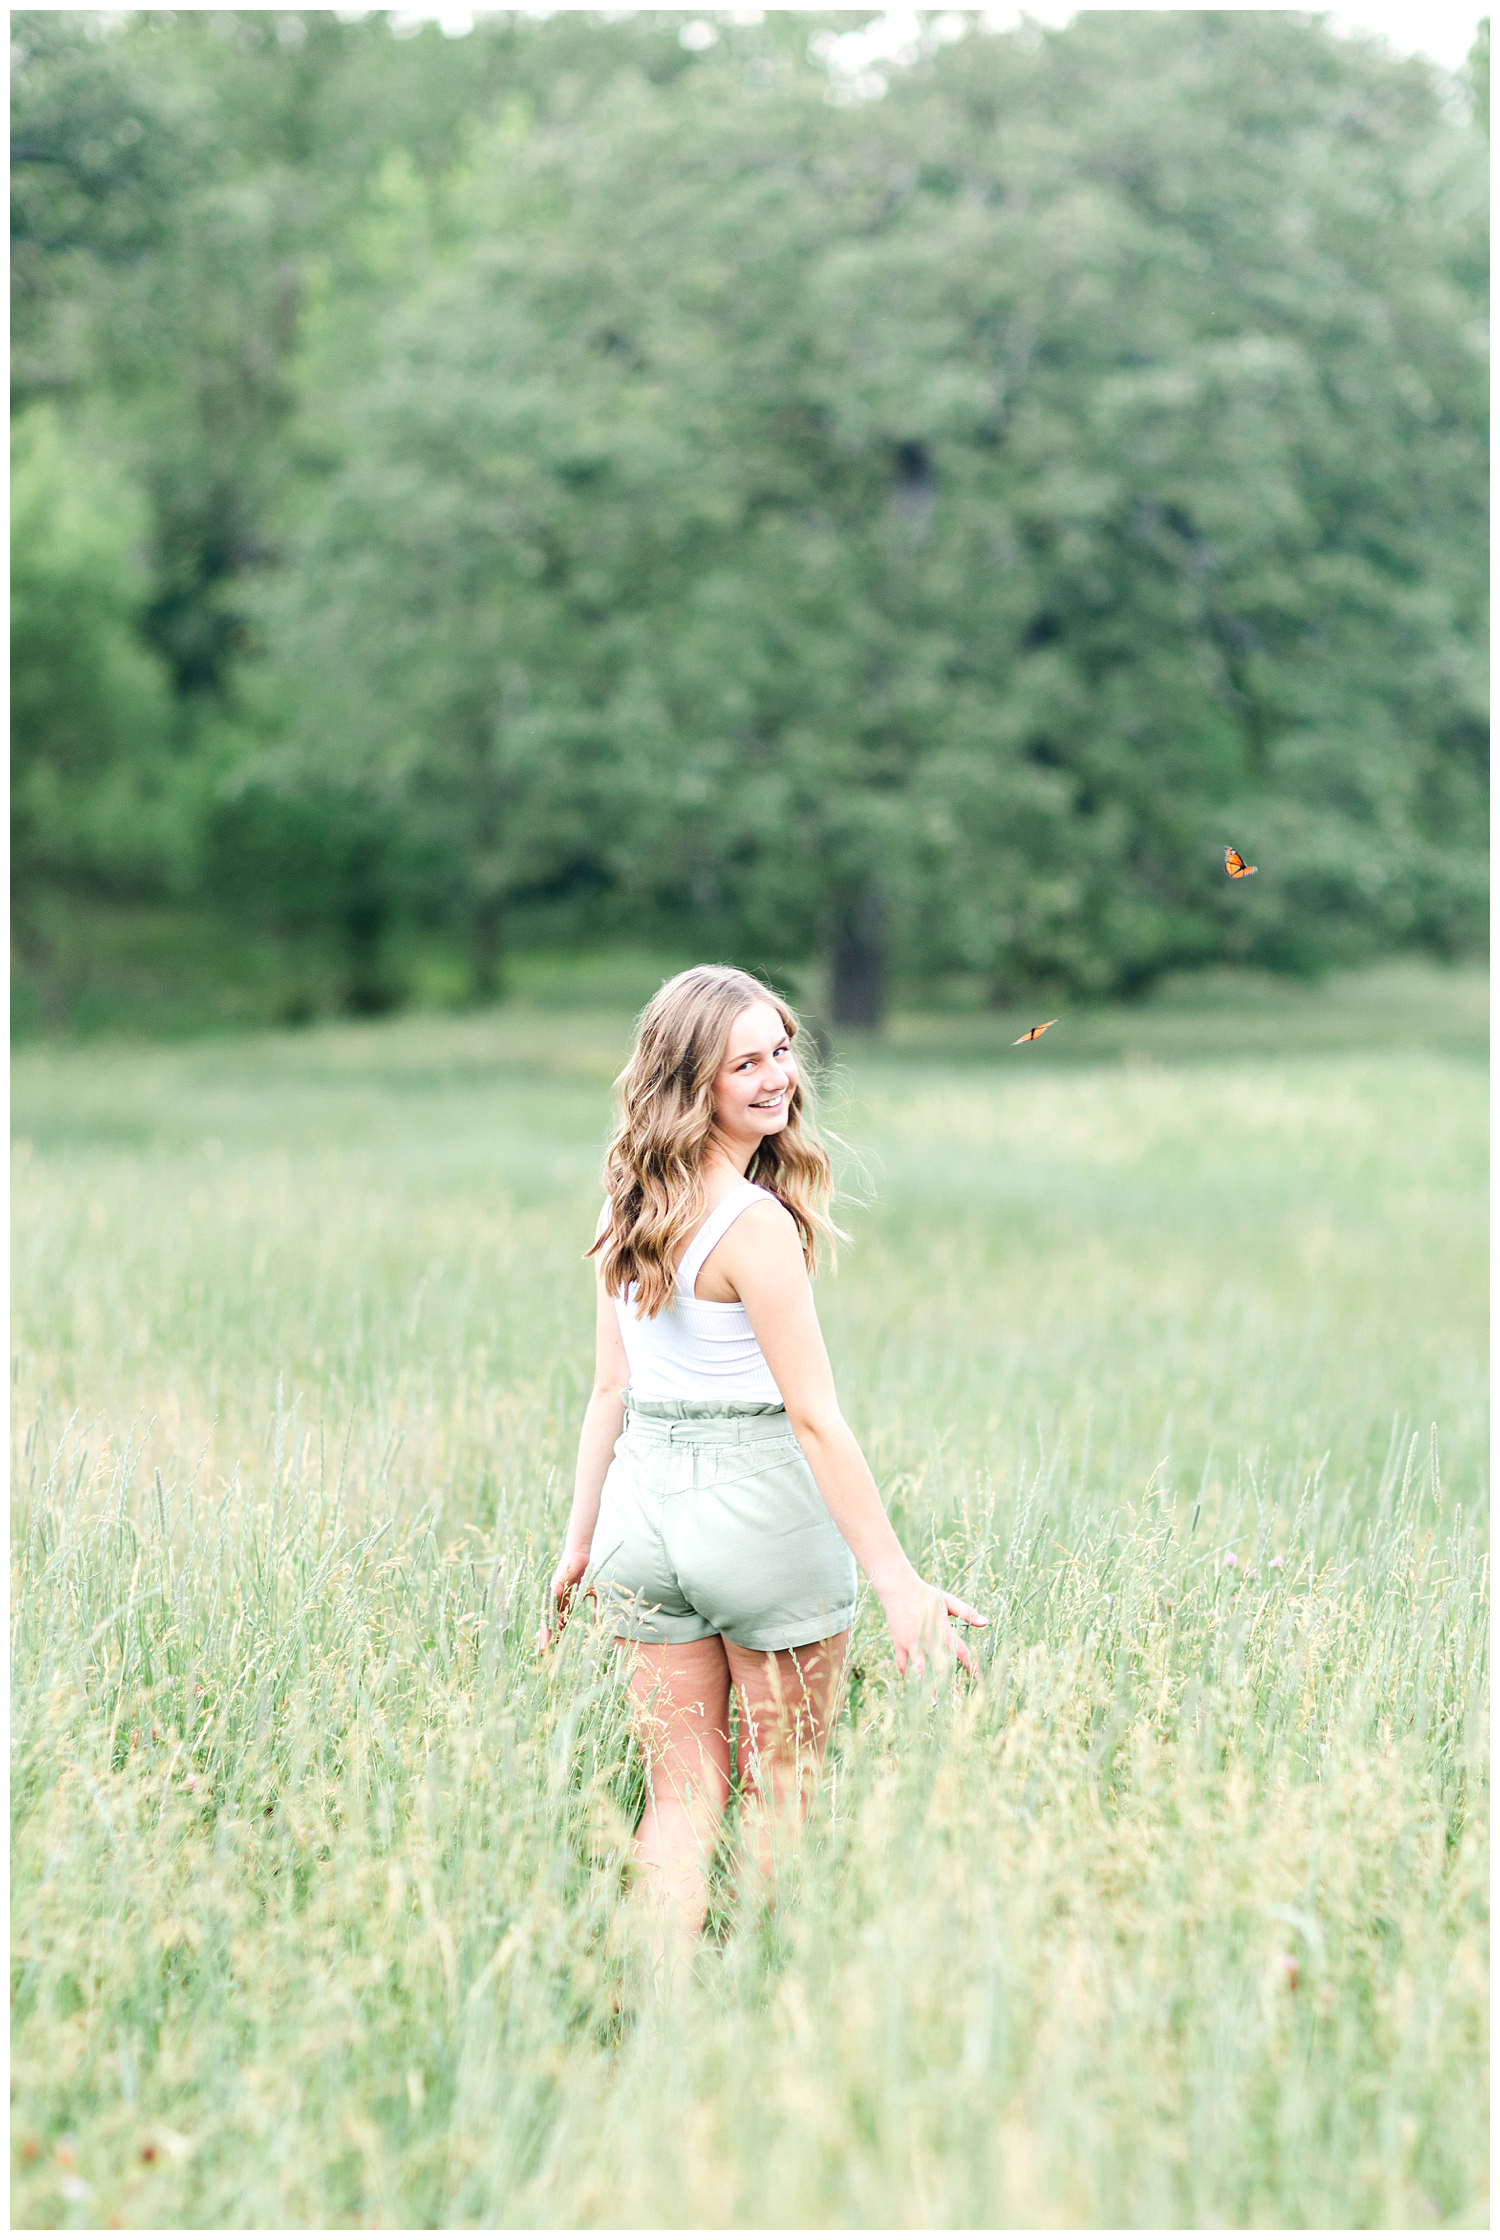 Senior Taylor walking away in a grassy field with butterflies flying around her | CB Studio